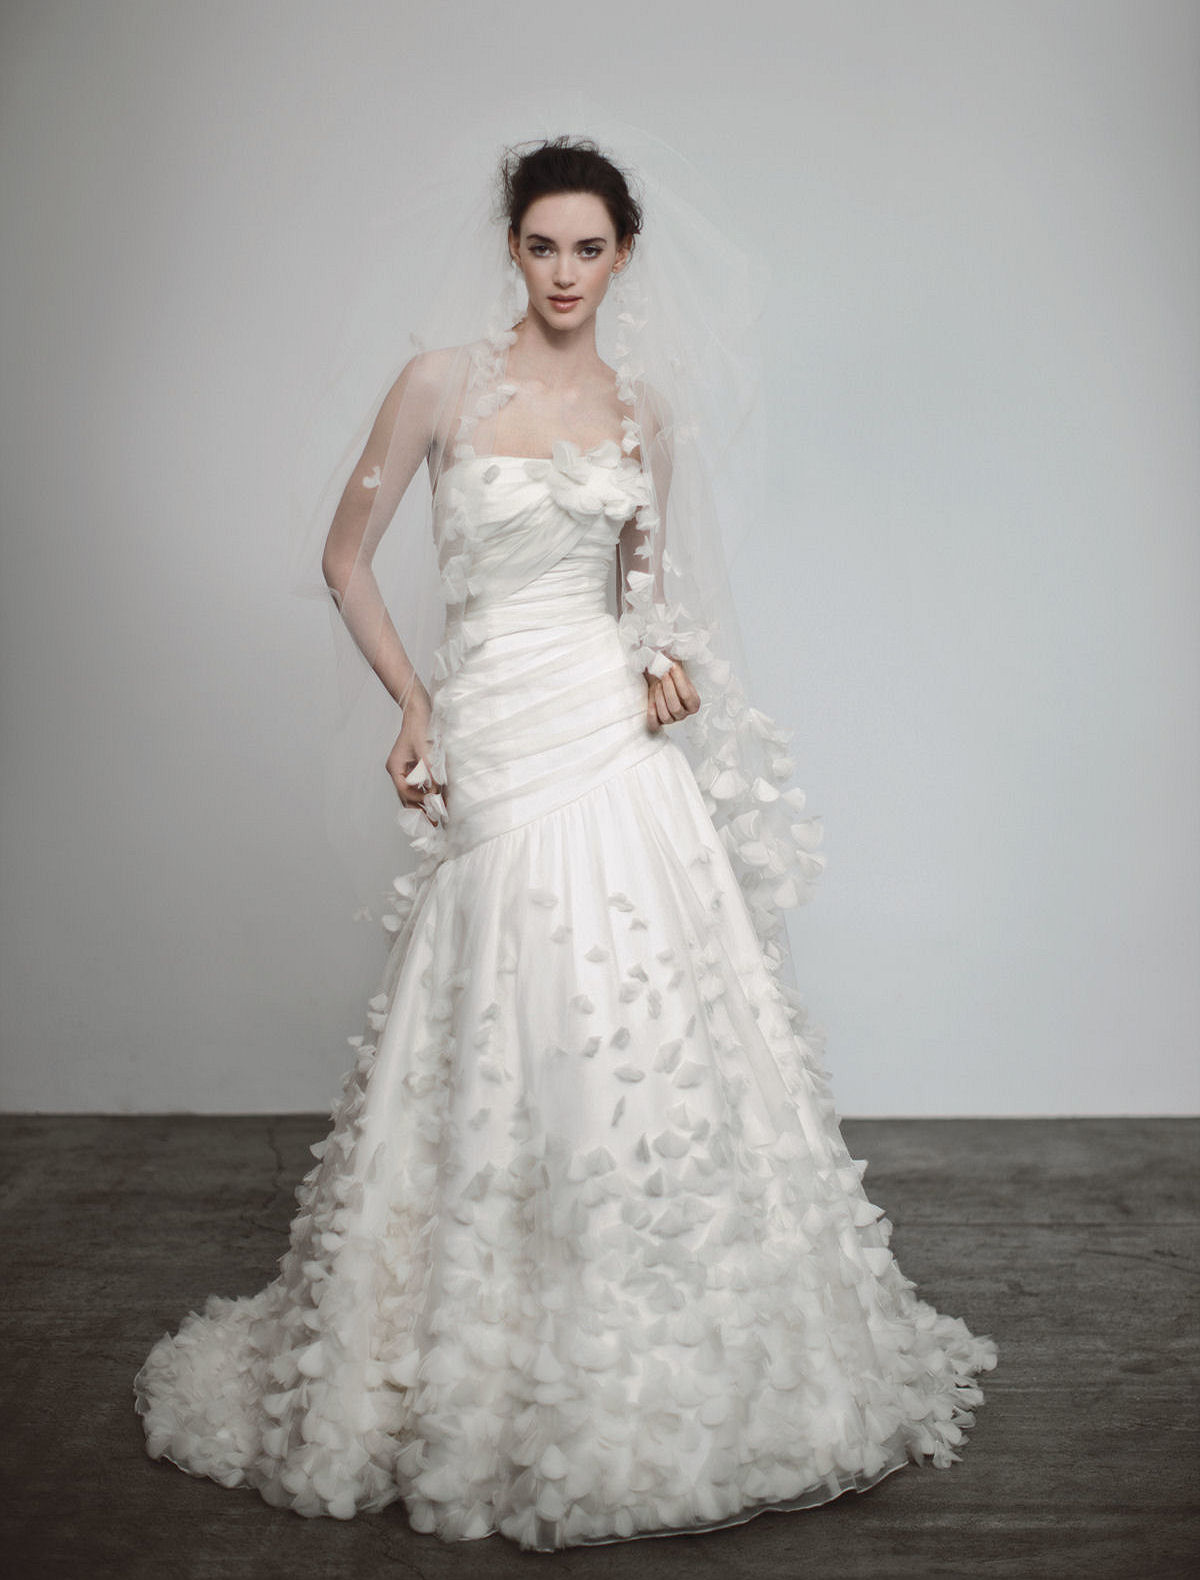 Bridal Gowns Boston : The blushing melissa sweet and priscilla of boston